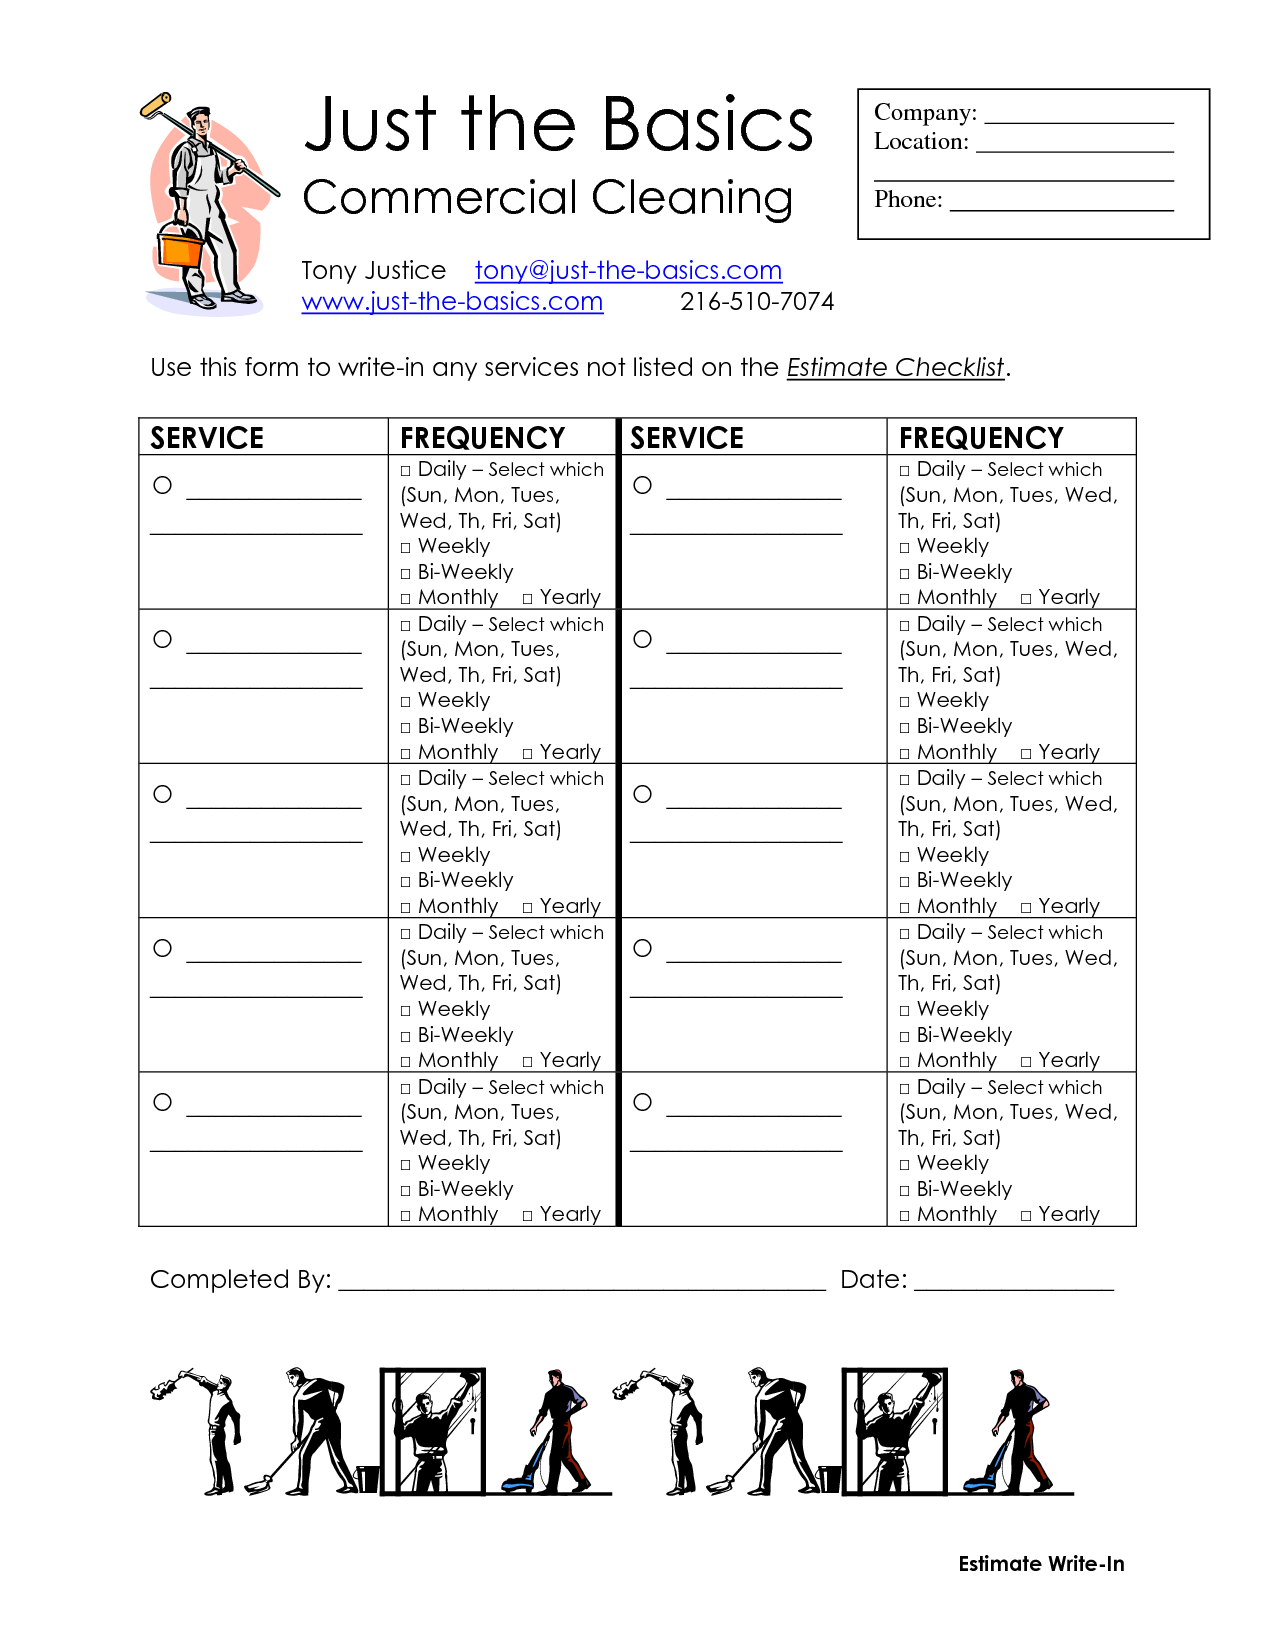 Commercial Cleaning Checklist Printable | DIY Cleaning Supplies ...